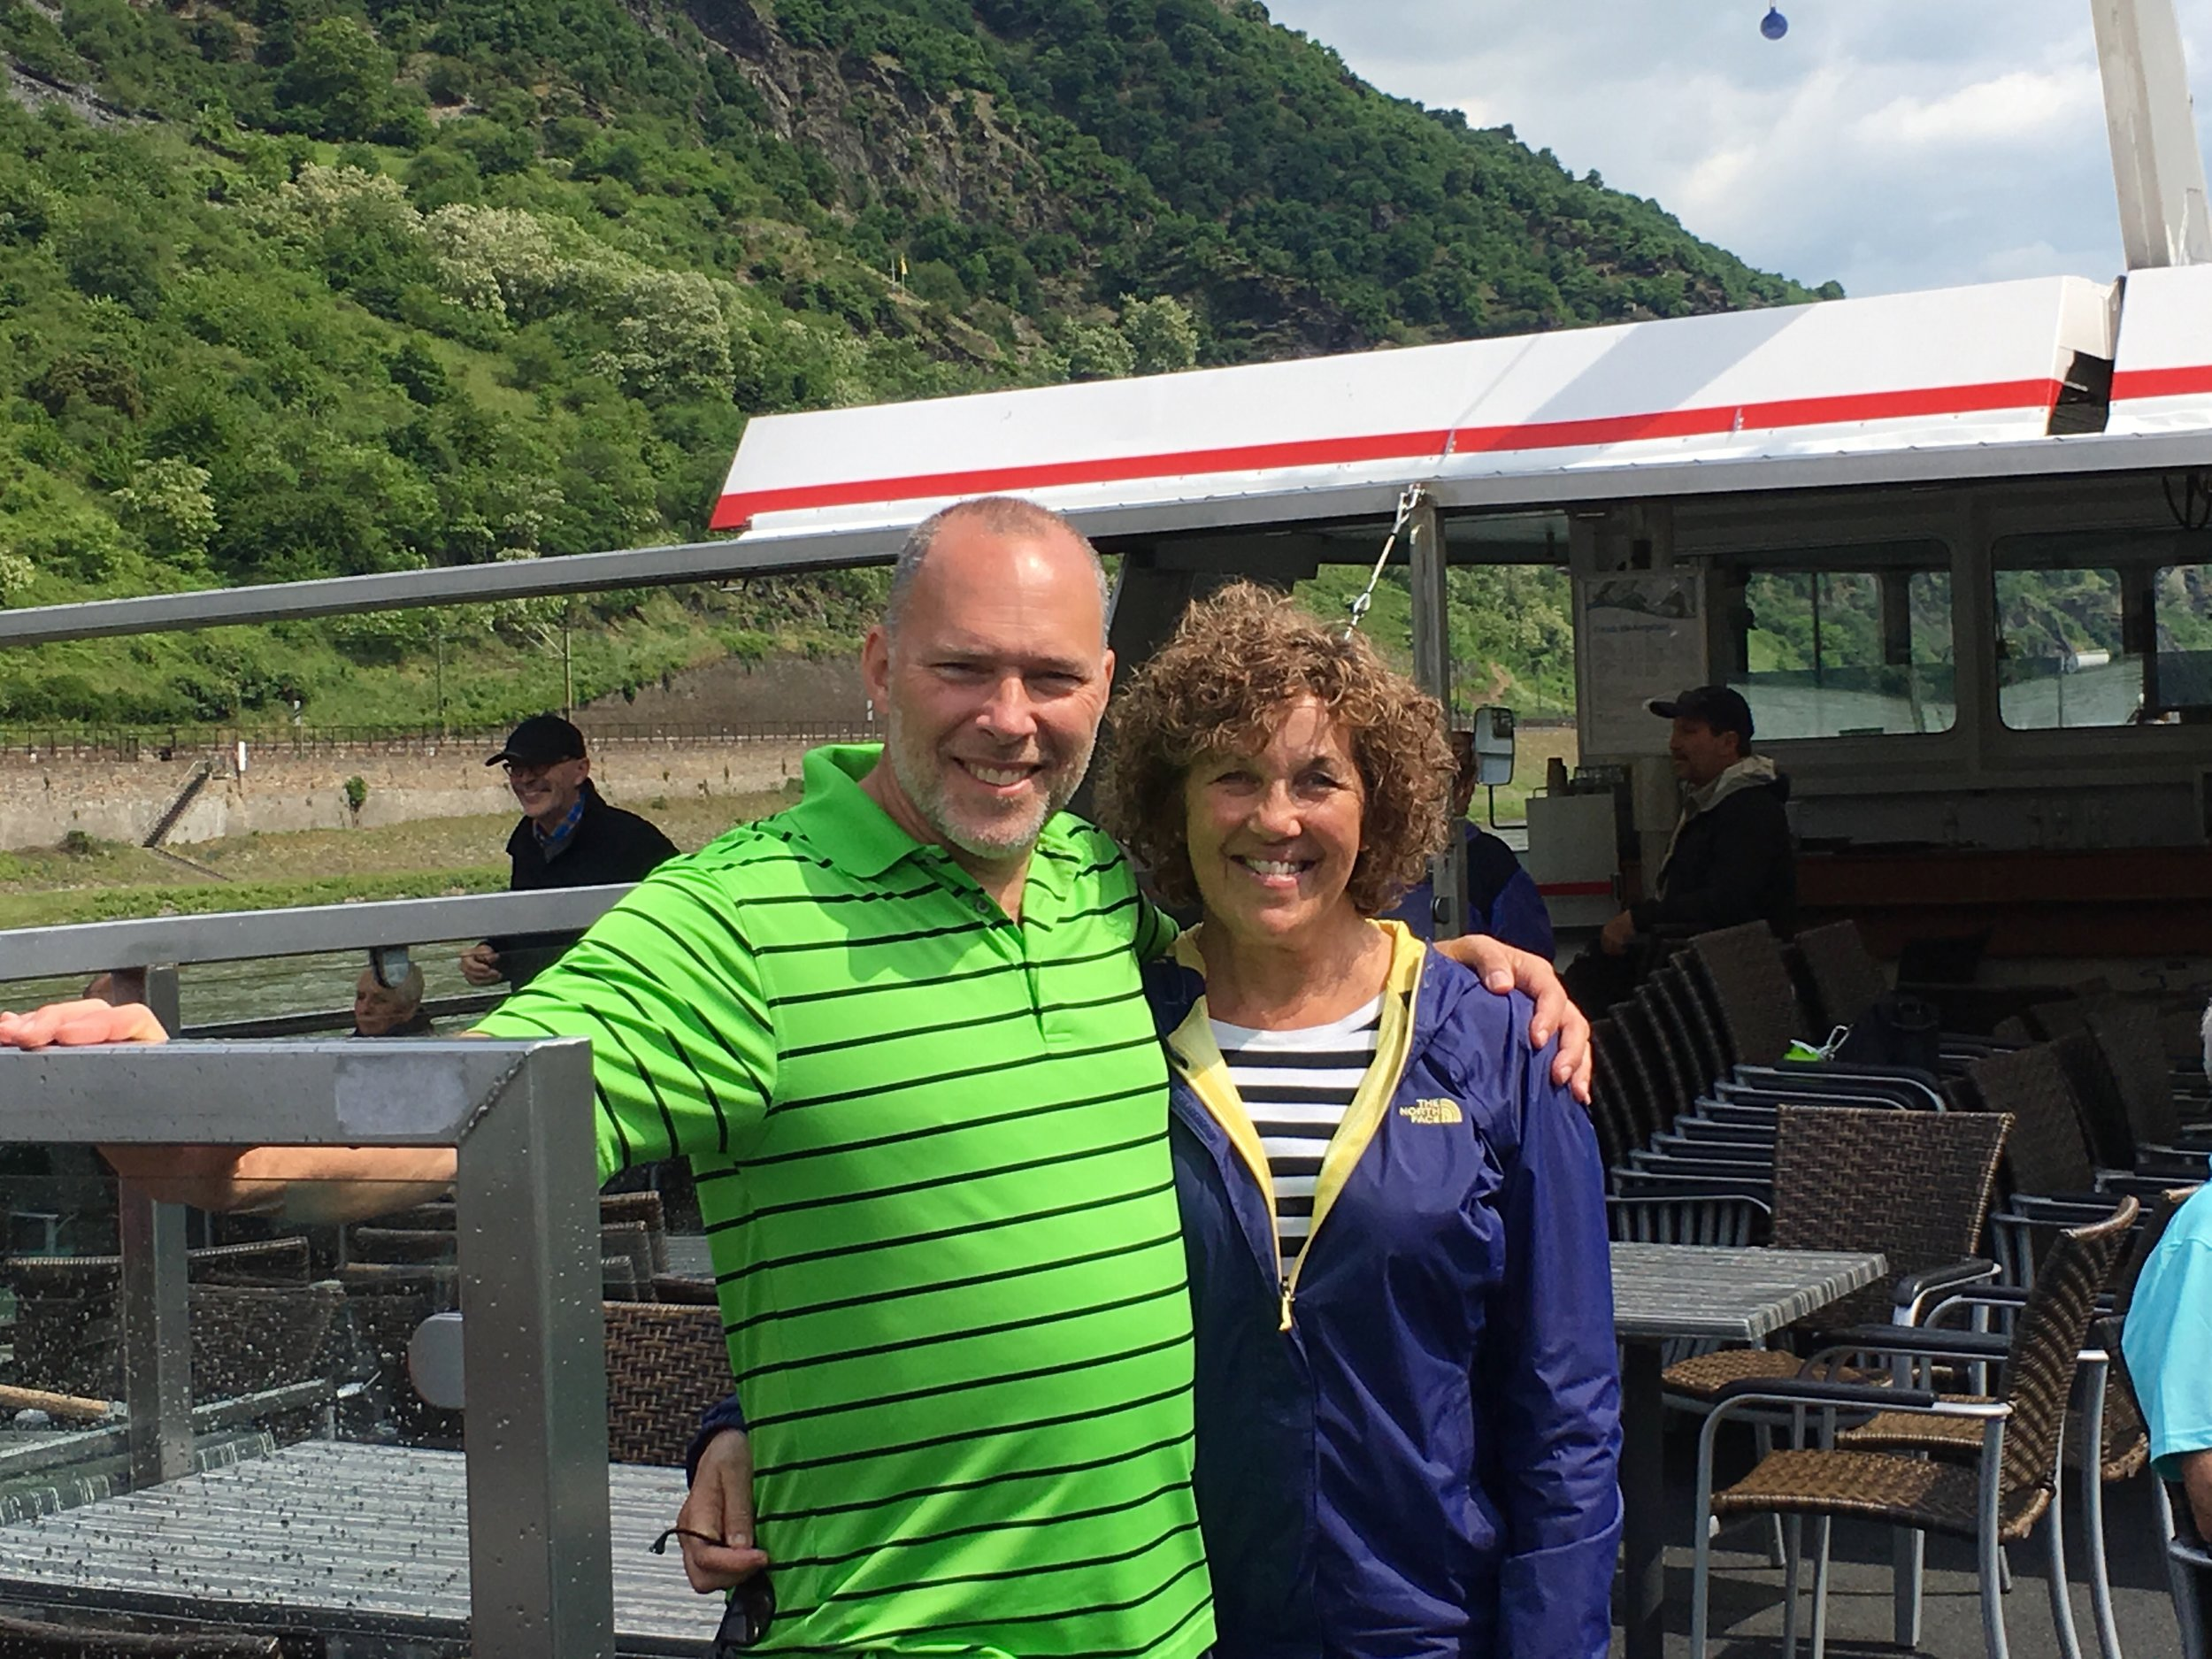 So, our cruise on the Rhine ended at the dock in front of the town of Bacharach and we were back in the beautiful town we called home for two days.  Then it was time to be off for our evening meal with a dozen of our new friends!